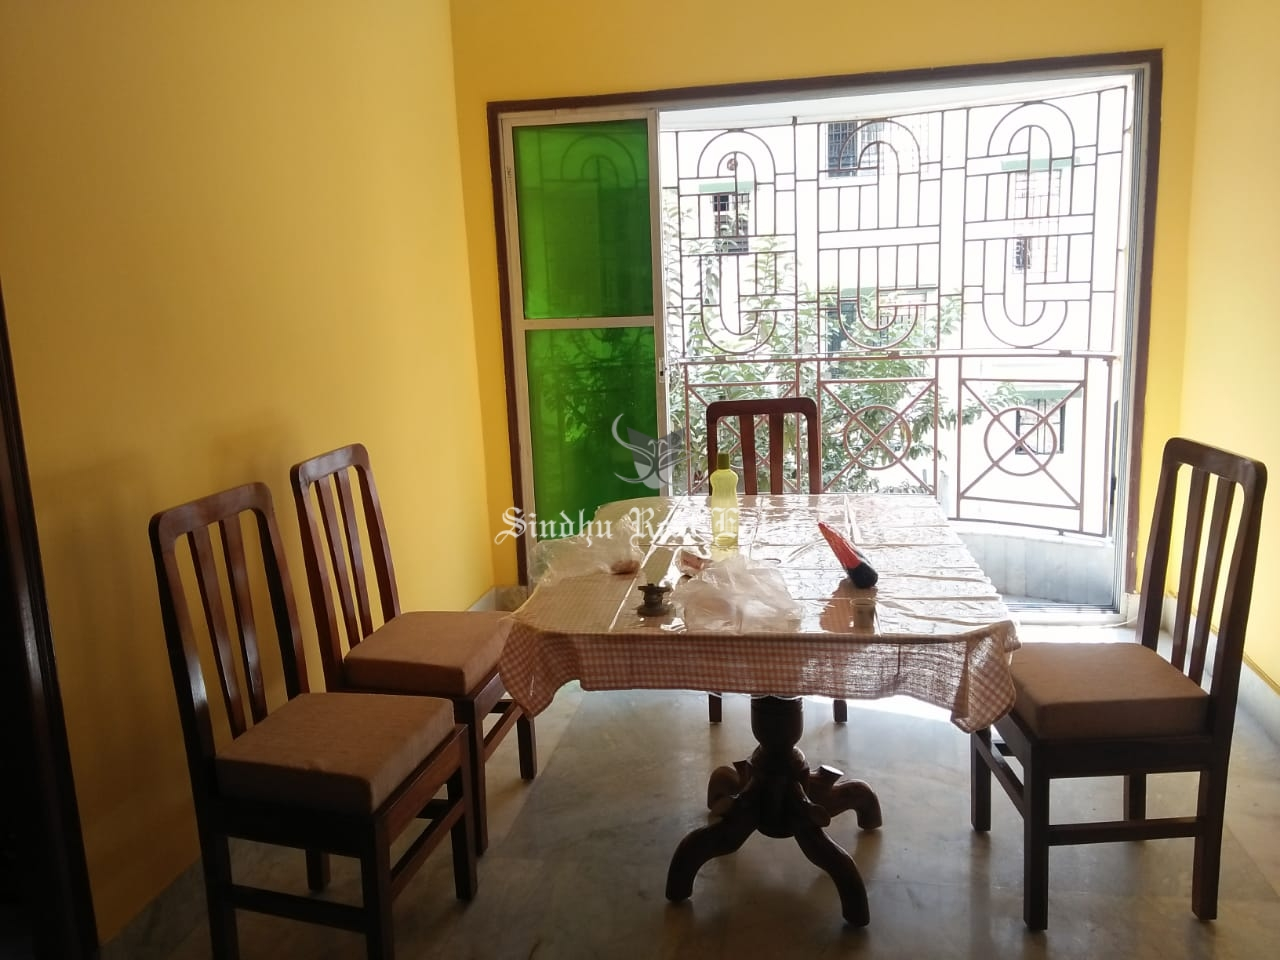 Rent 3 BHK flat at New town area